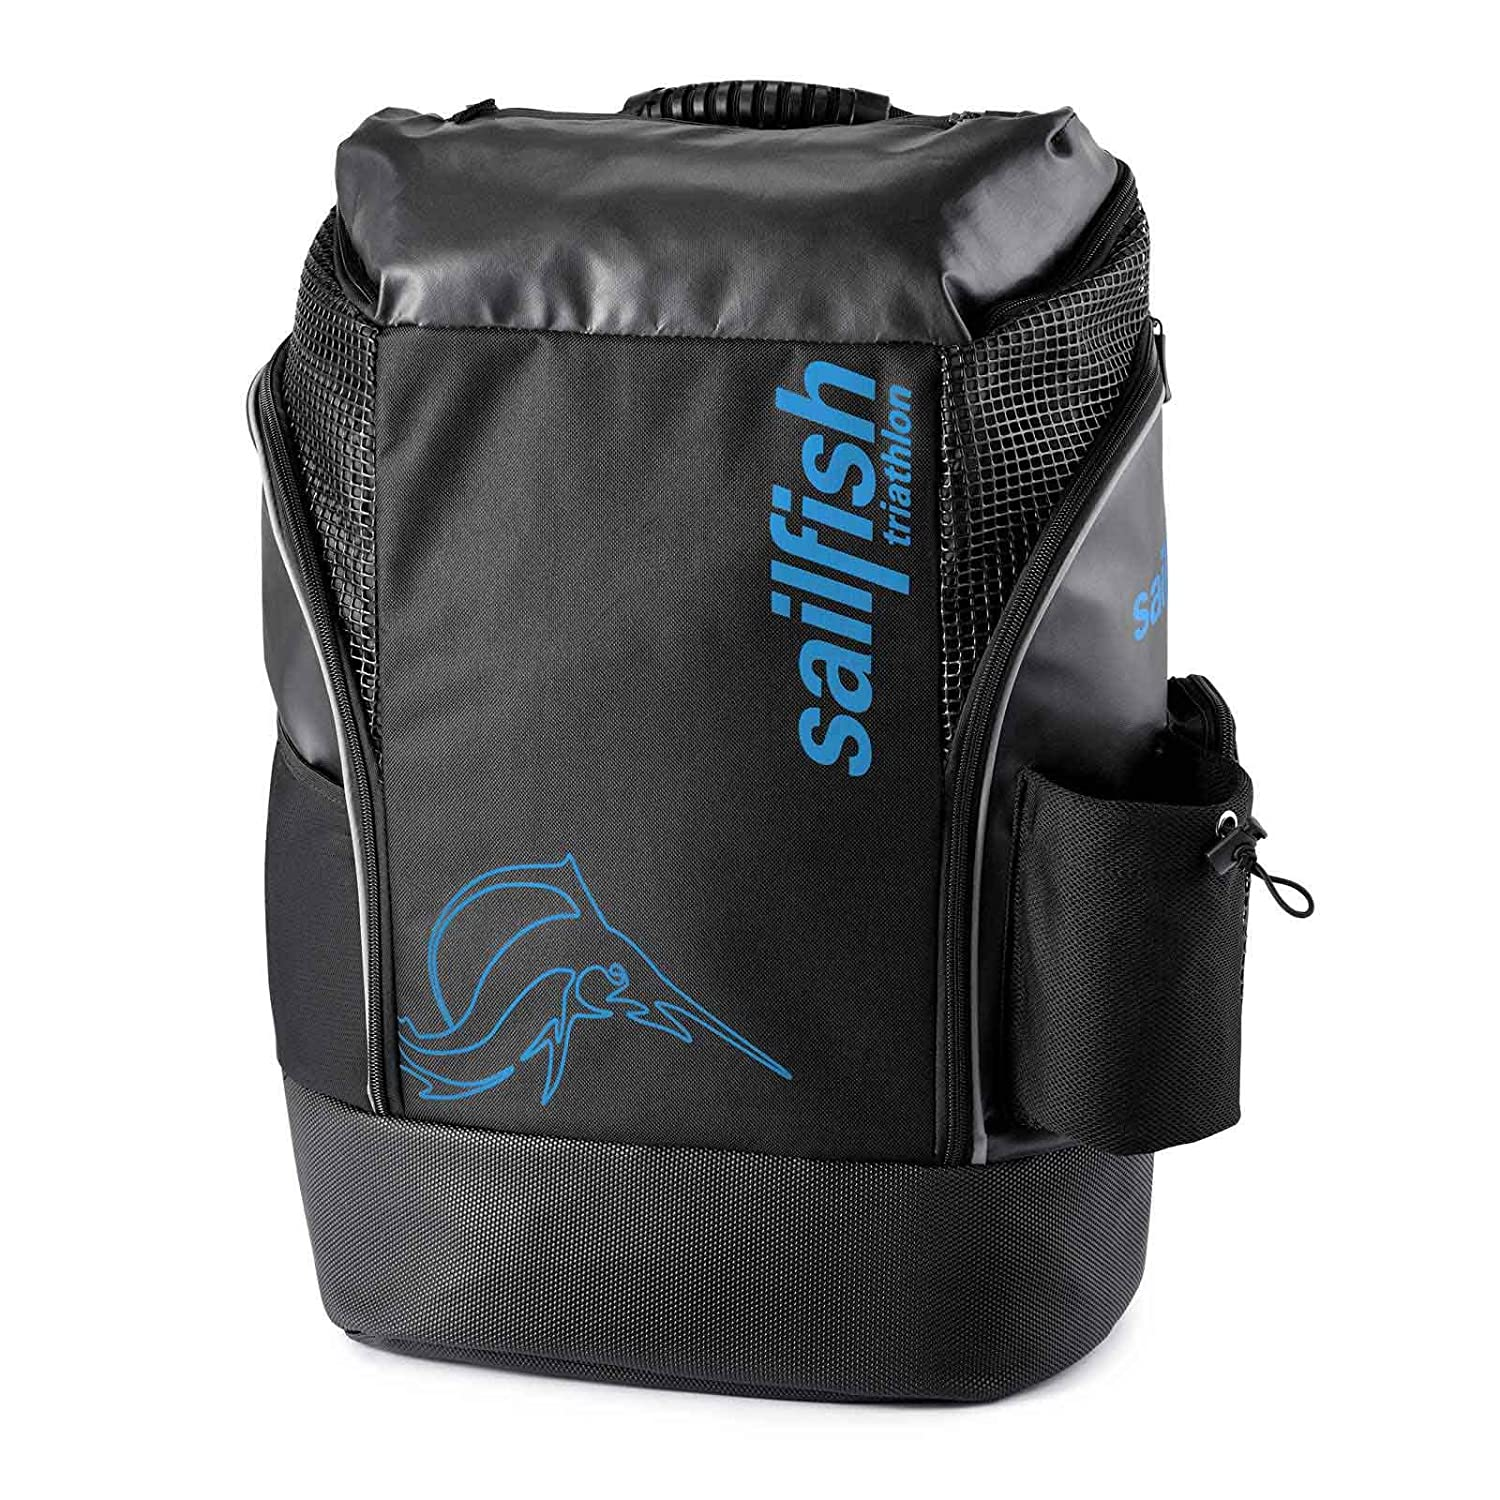 Mochila Sailfish 35 Litros - Backpack Cape Town (Black / Blue): Amazon.es: Deportes y aire libre